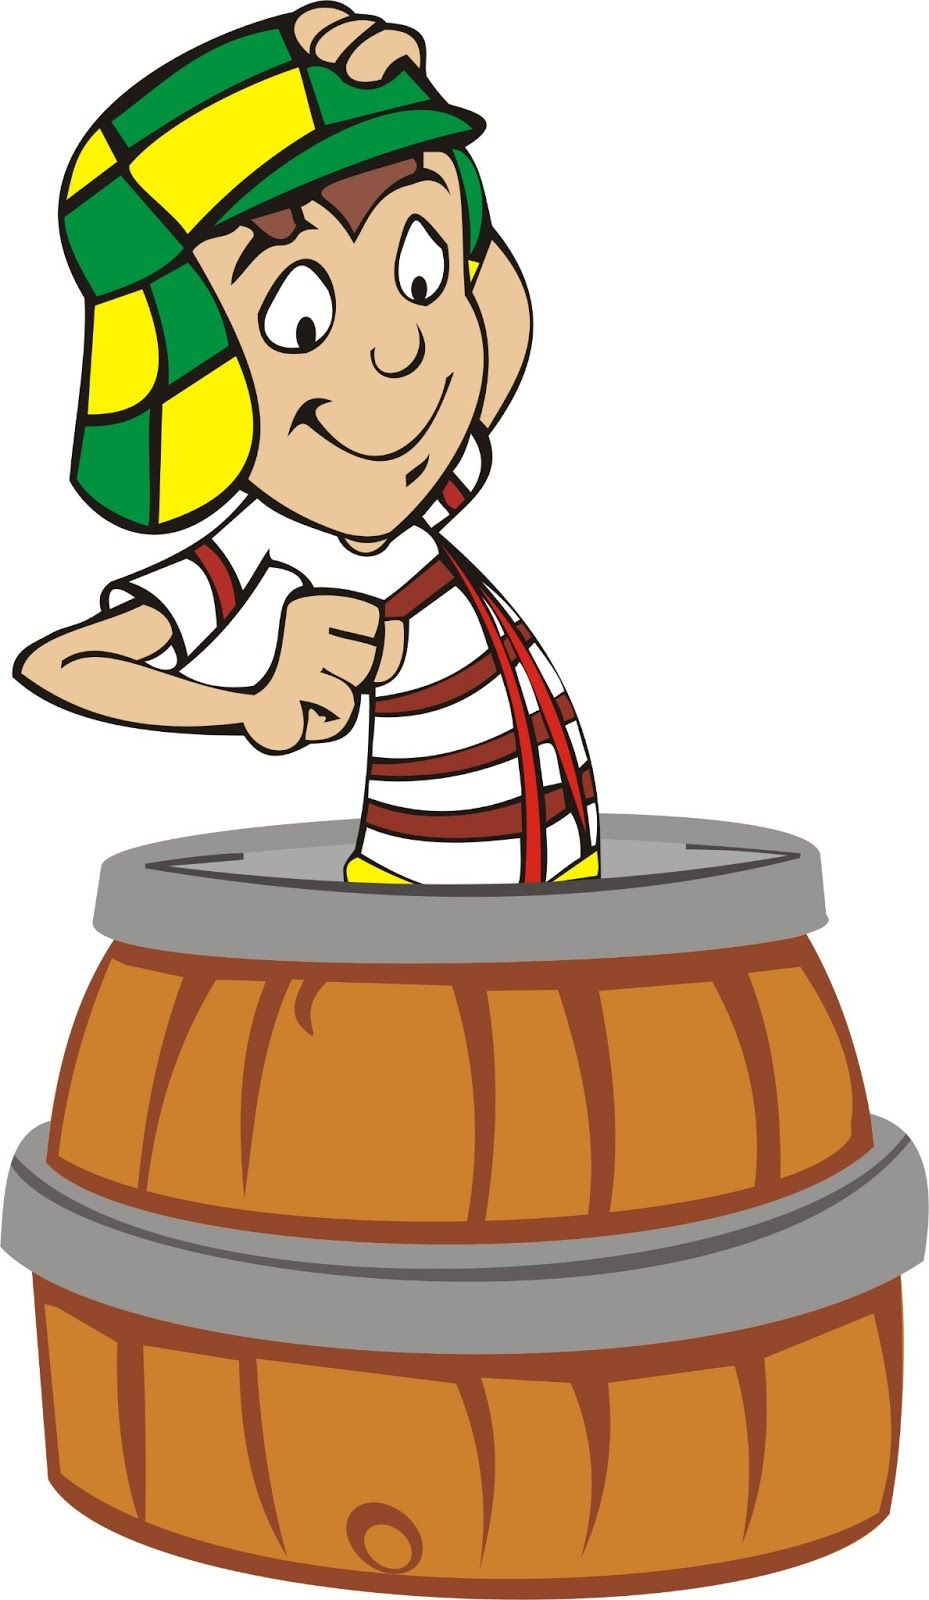 Clip Art El Chavo Del Ocho Coloring Pages 1000 images about el chavo on pinterest sale other countries and centerpieces